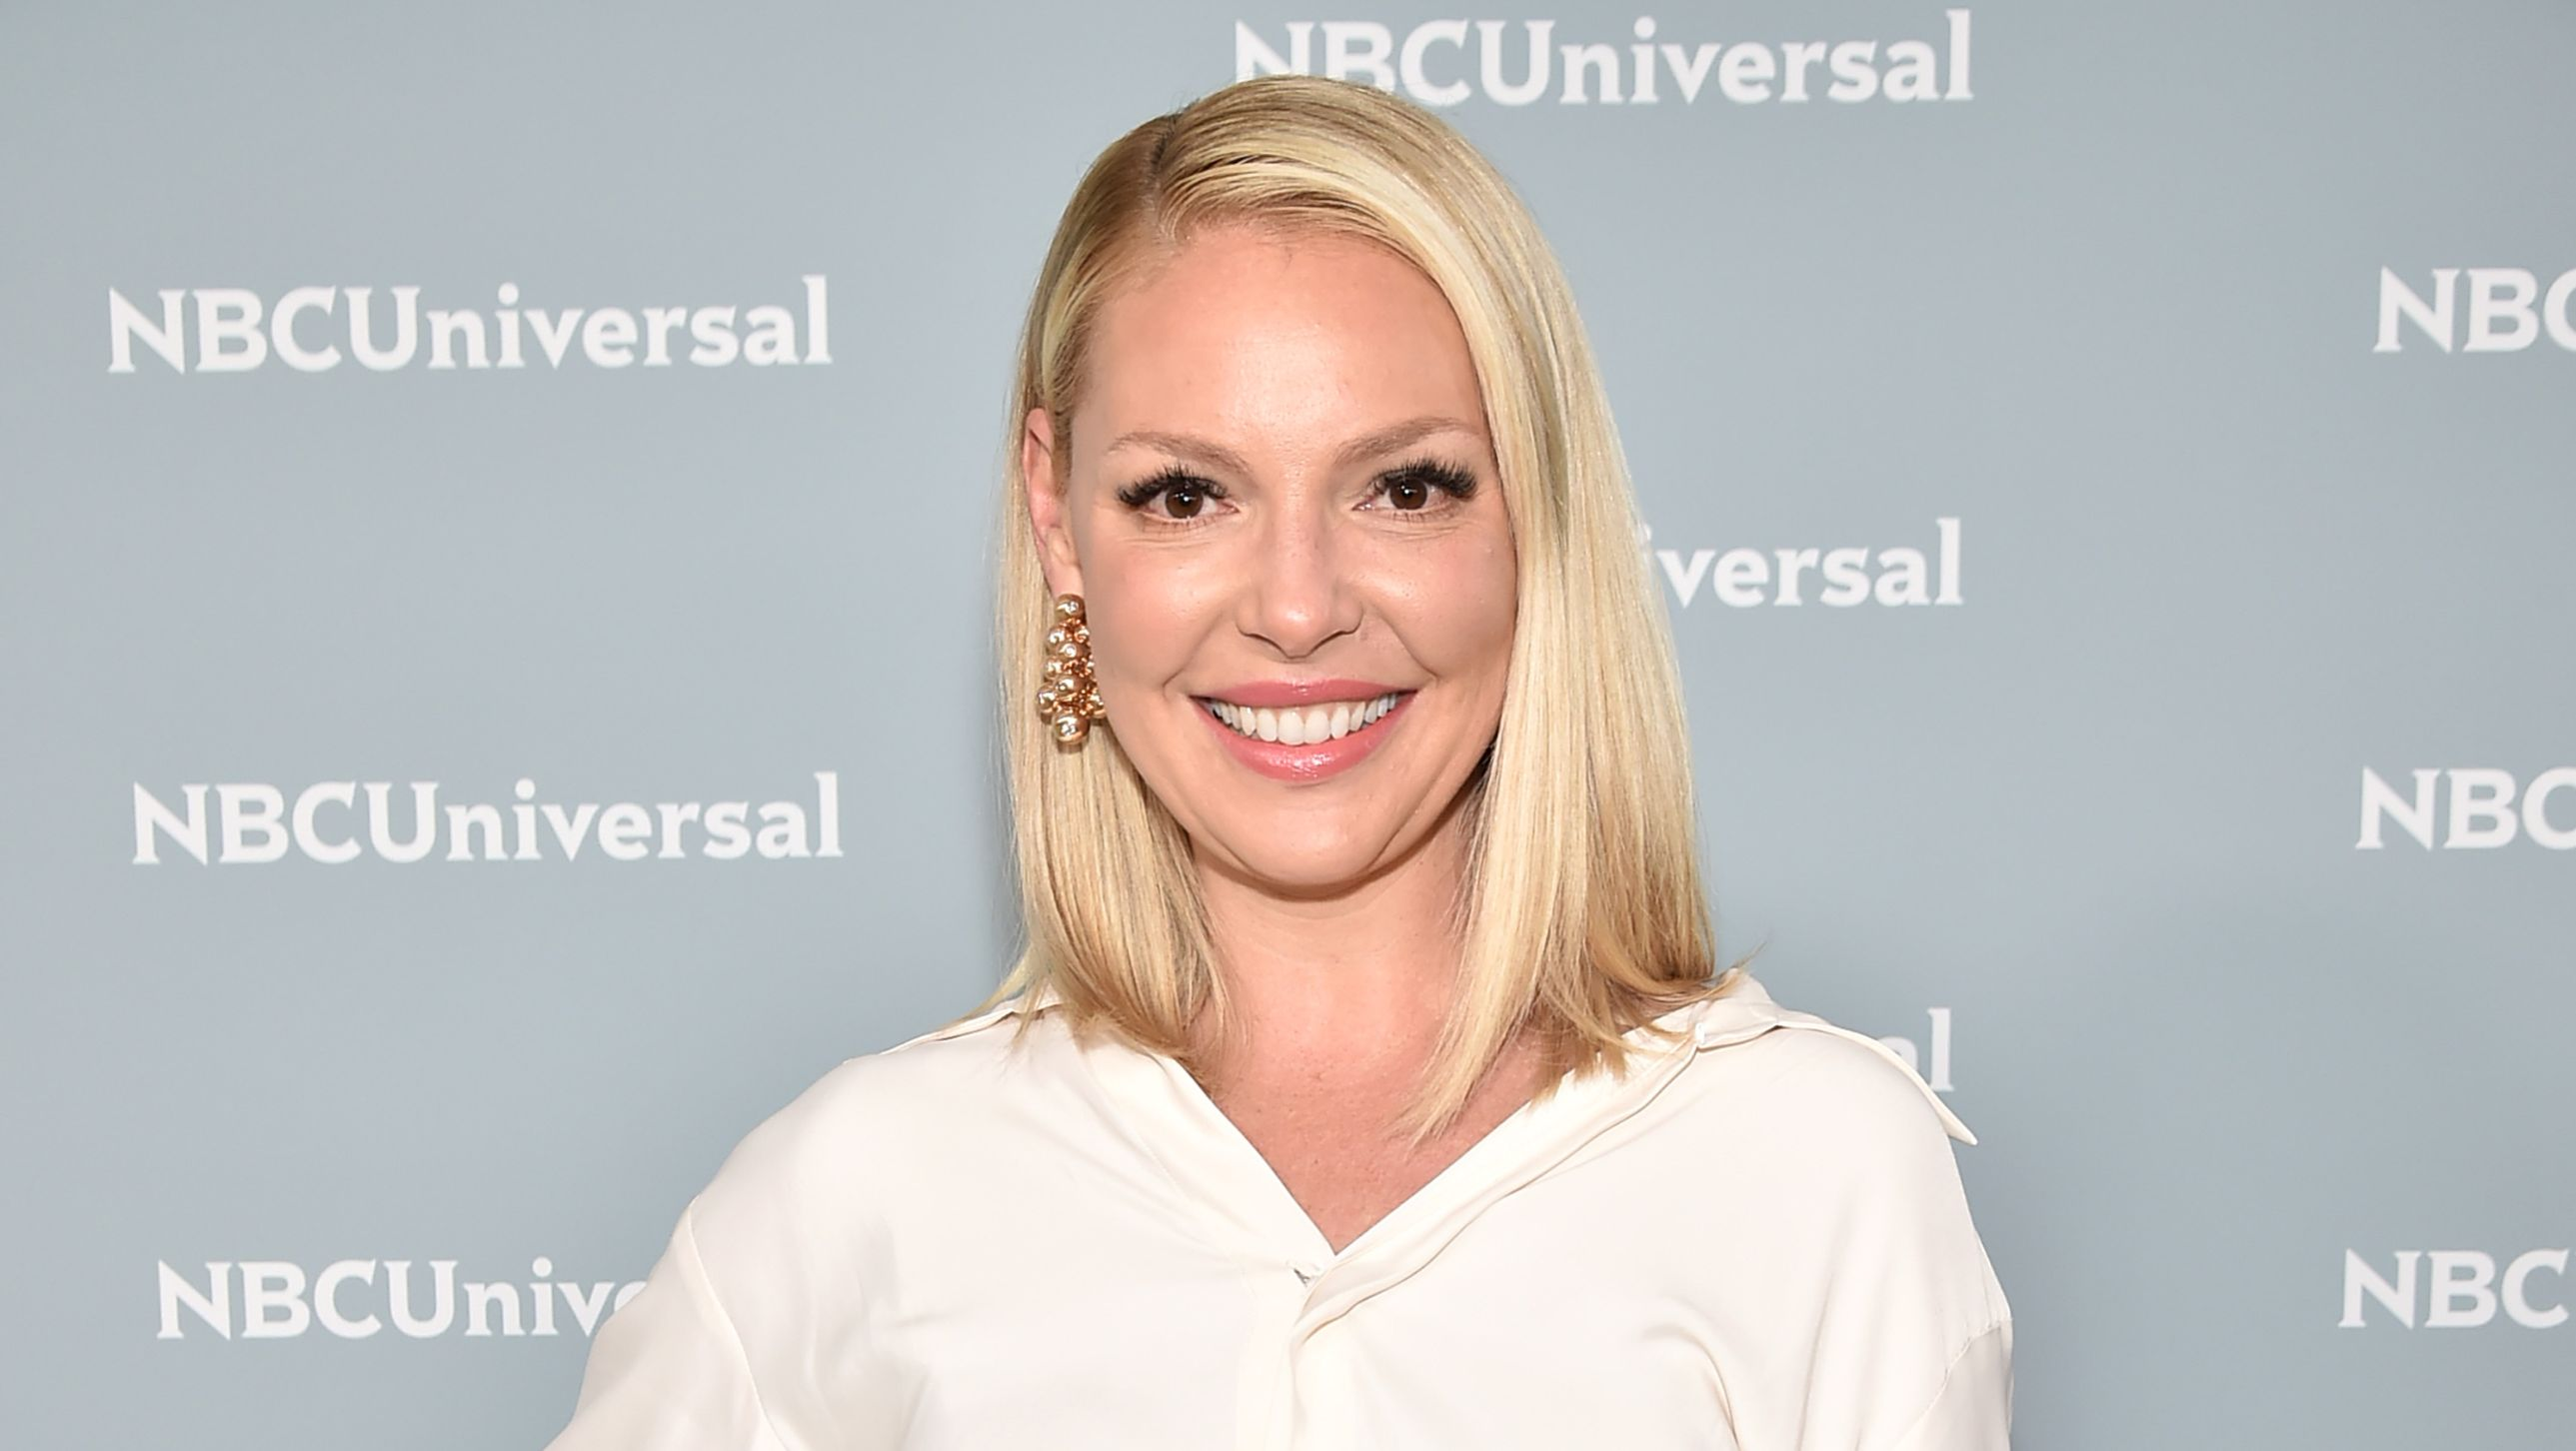 Katherine Heigl at NBC Universal Upfront in 2018. Katherine Heigl portrayed the role of Dr. Izzie Stevens in the medical drama, Grey's Anatomy